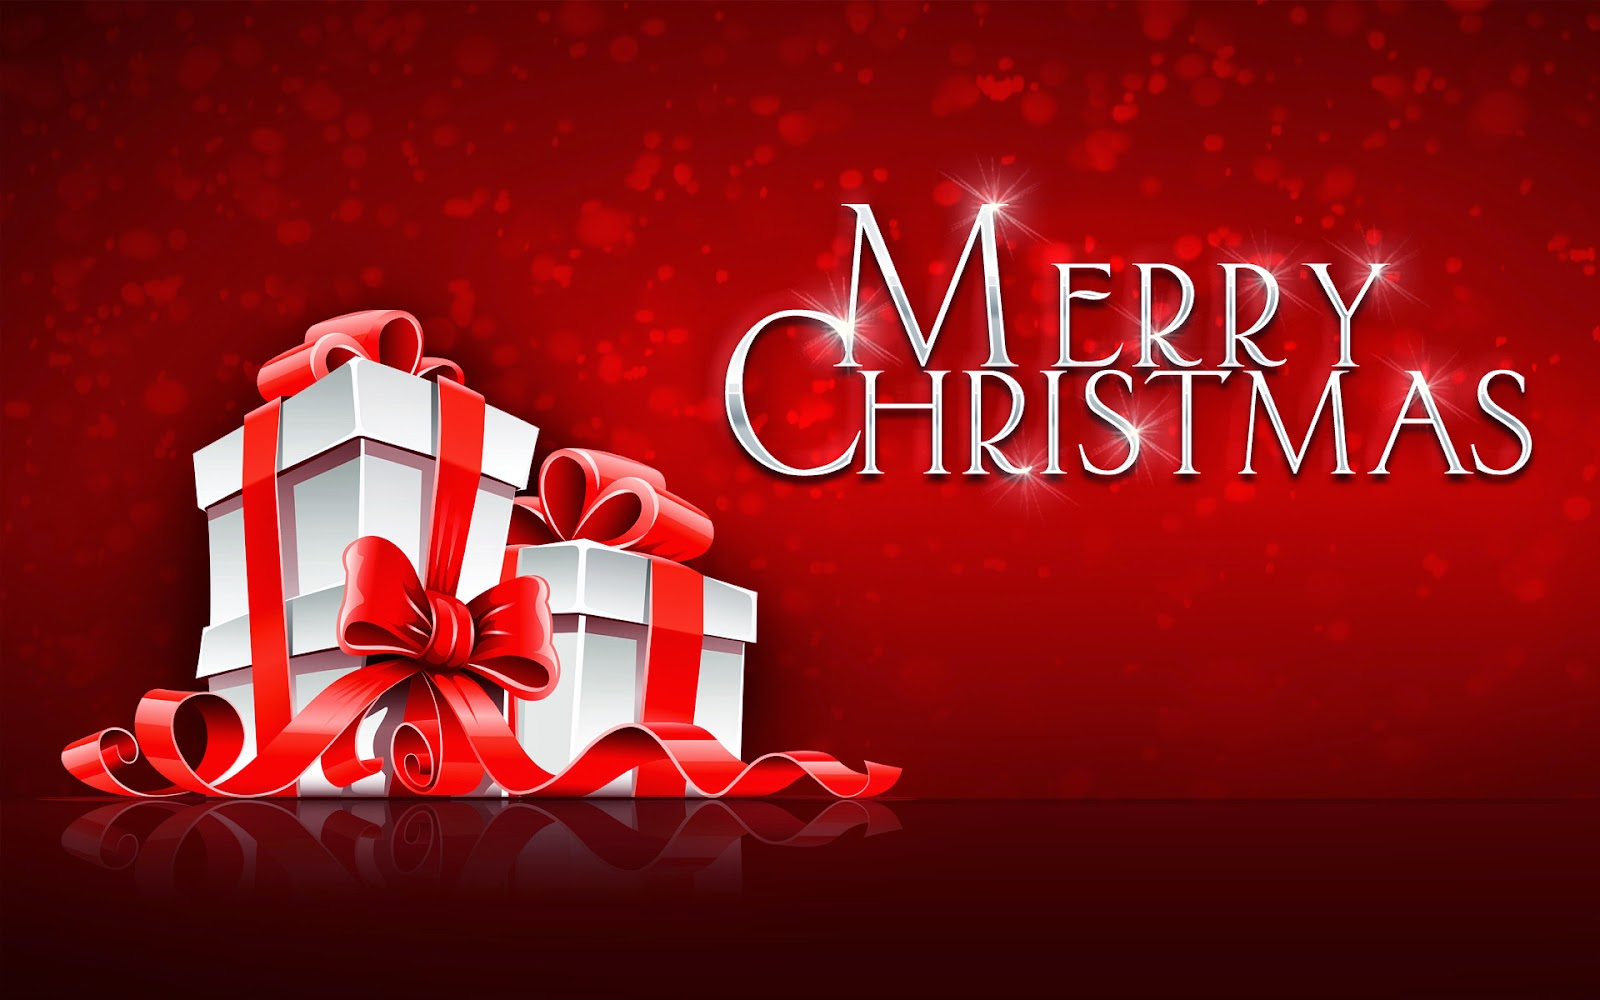 Merry christmas happy new year 2015 full hd wallpapers 7 new merry christmas gift card free download m4hsunfo